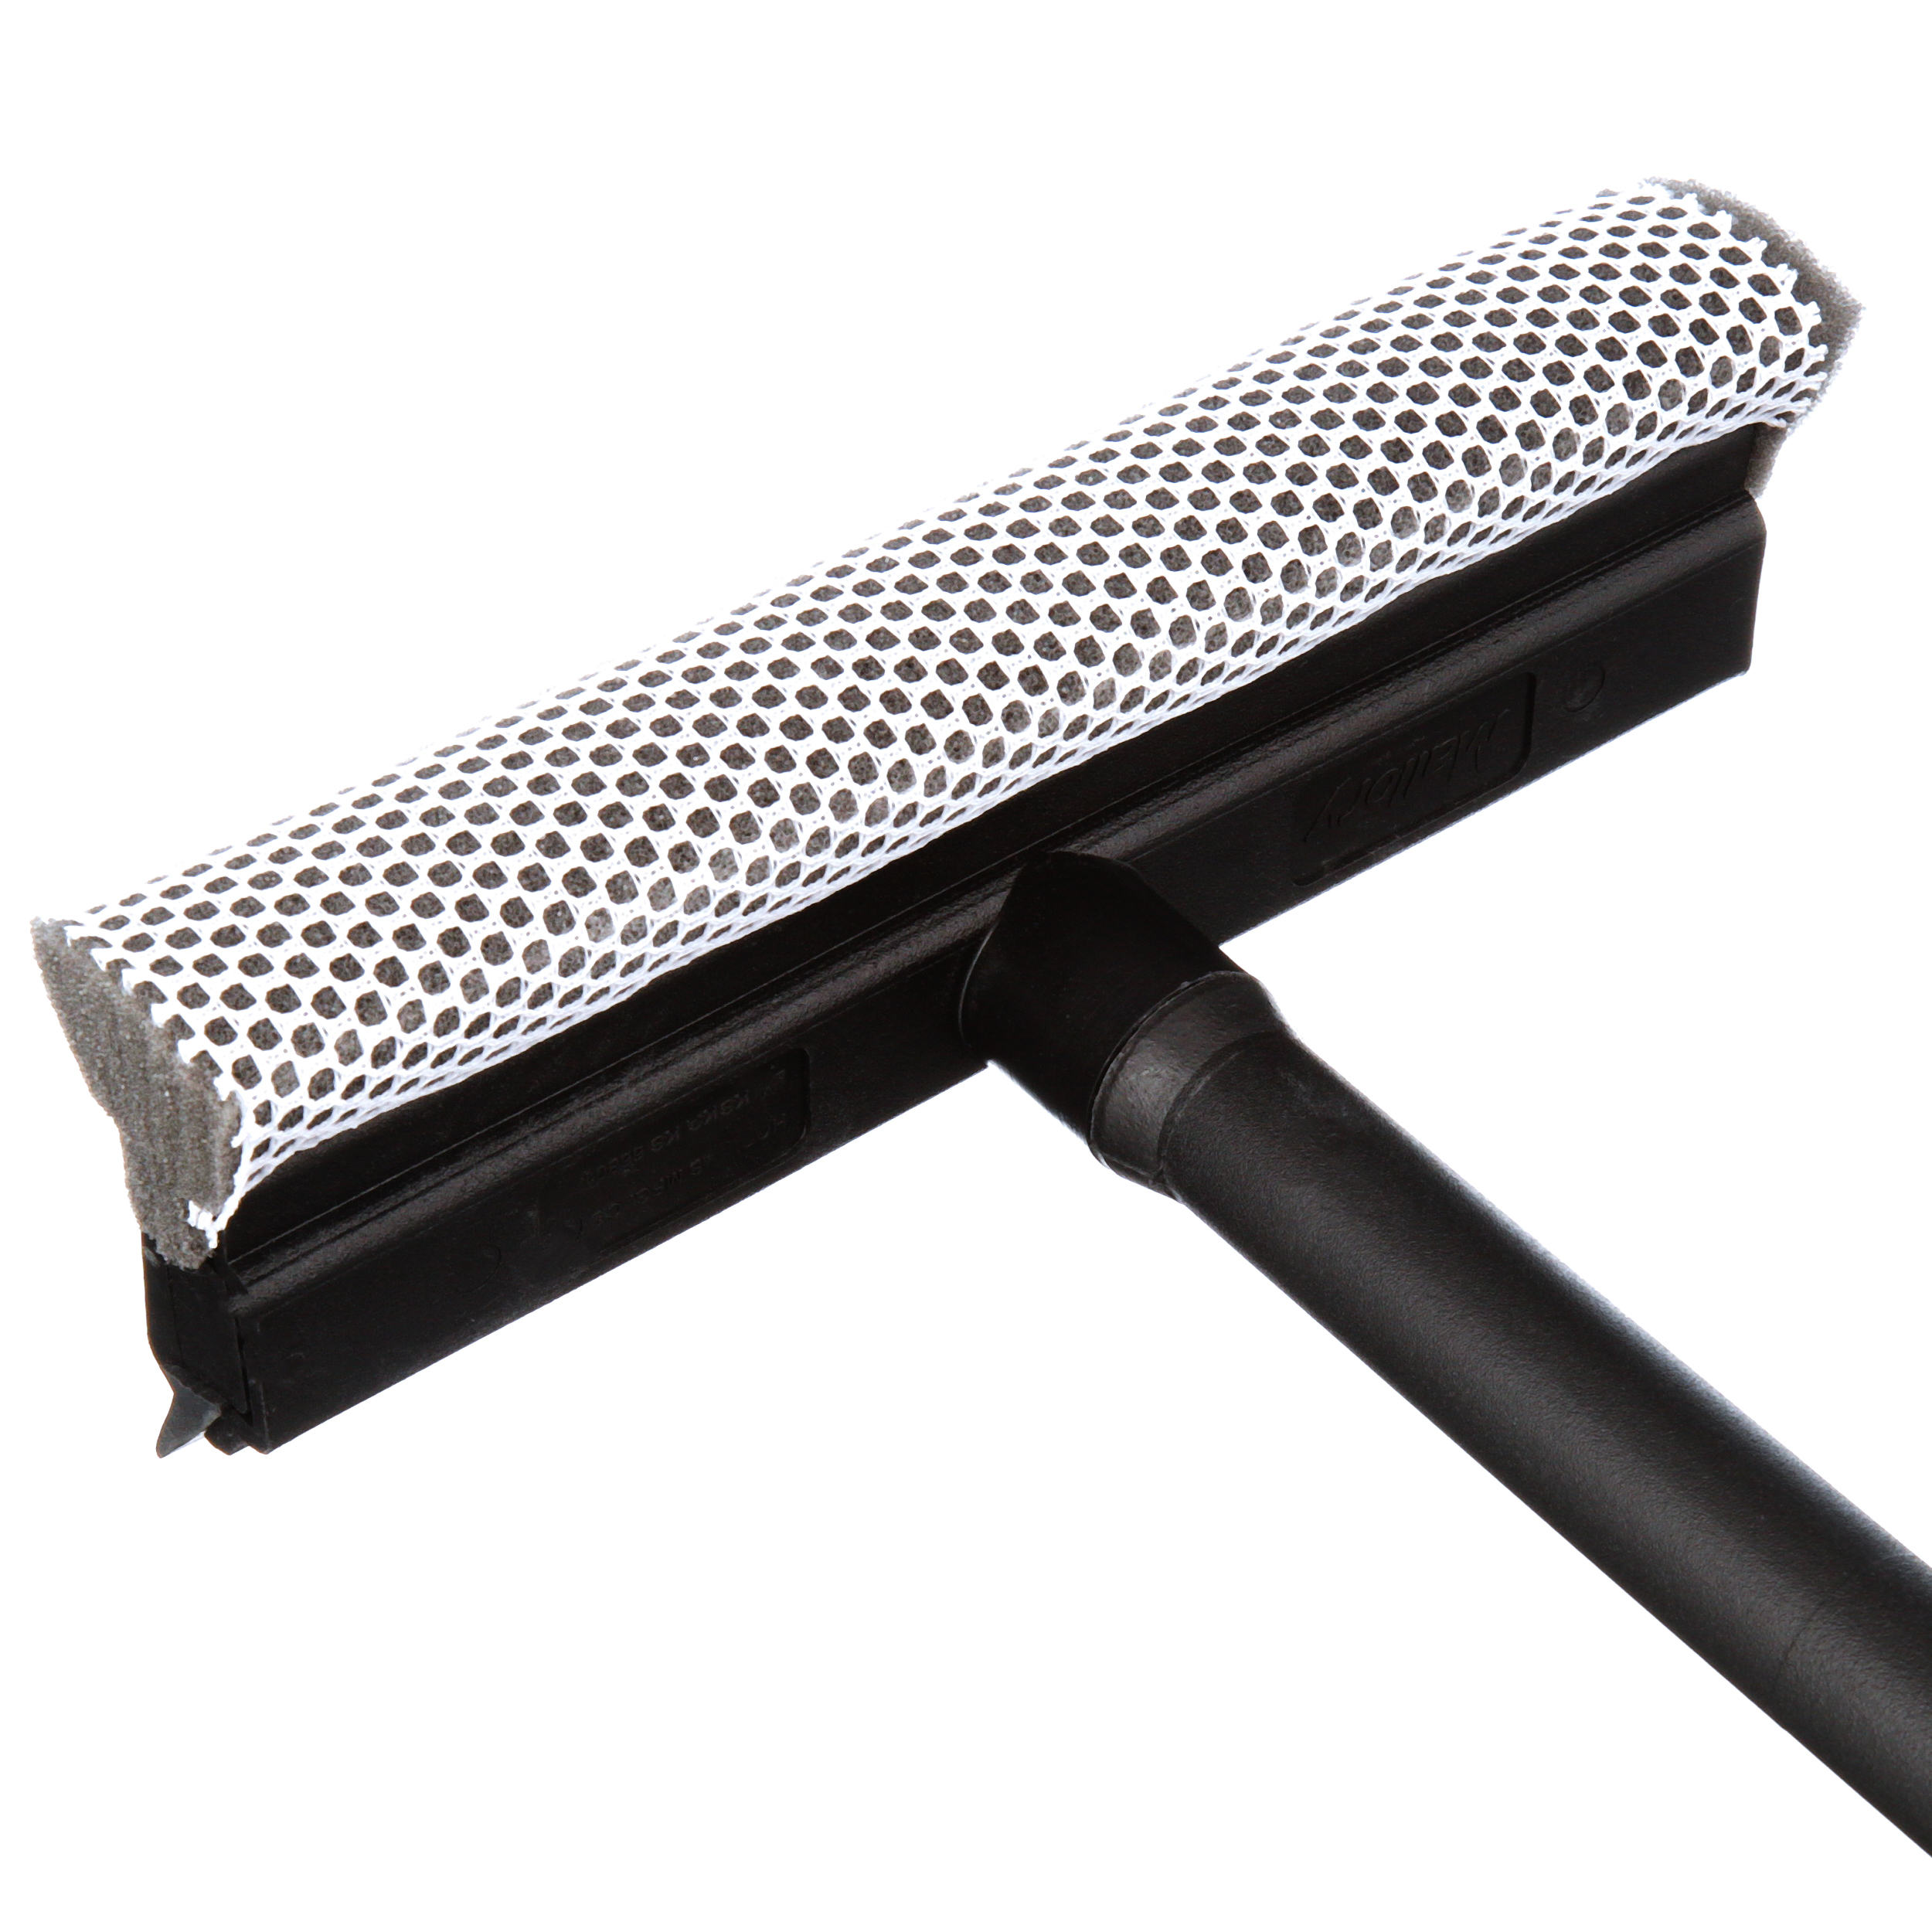 Squeegee Handle Mallory 111 Wood Handle Only 20 Inch